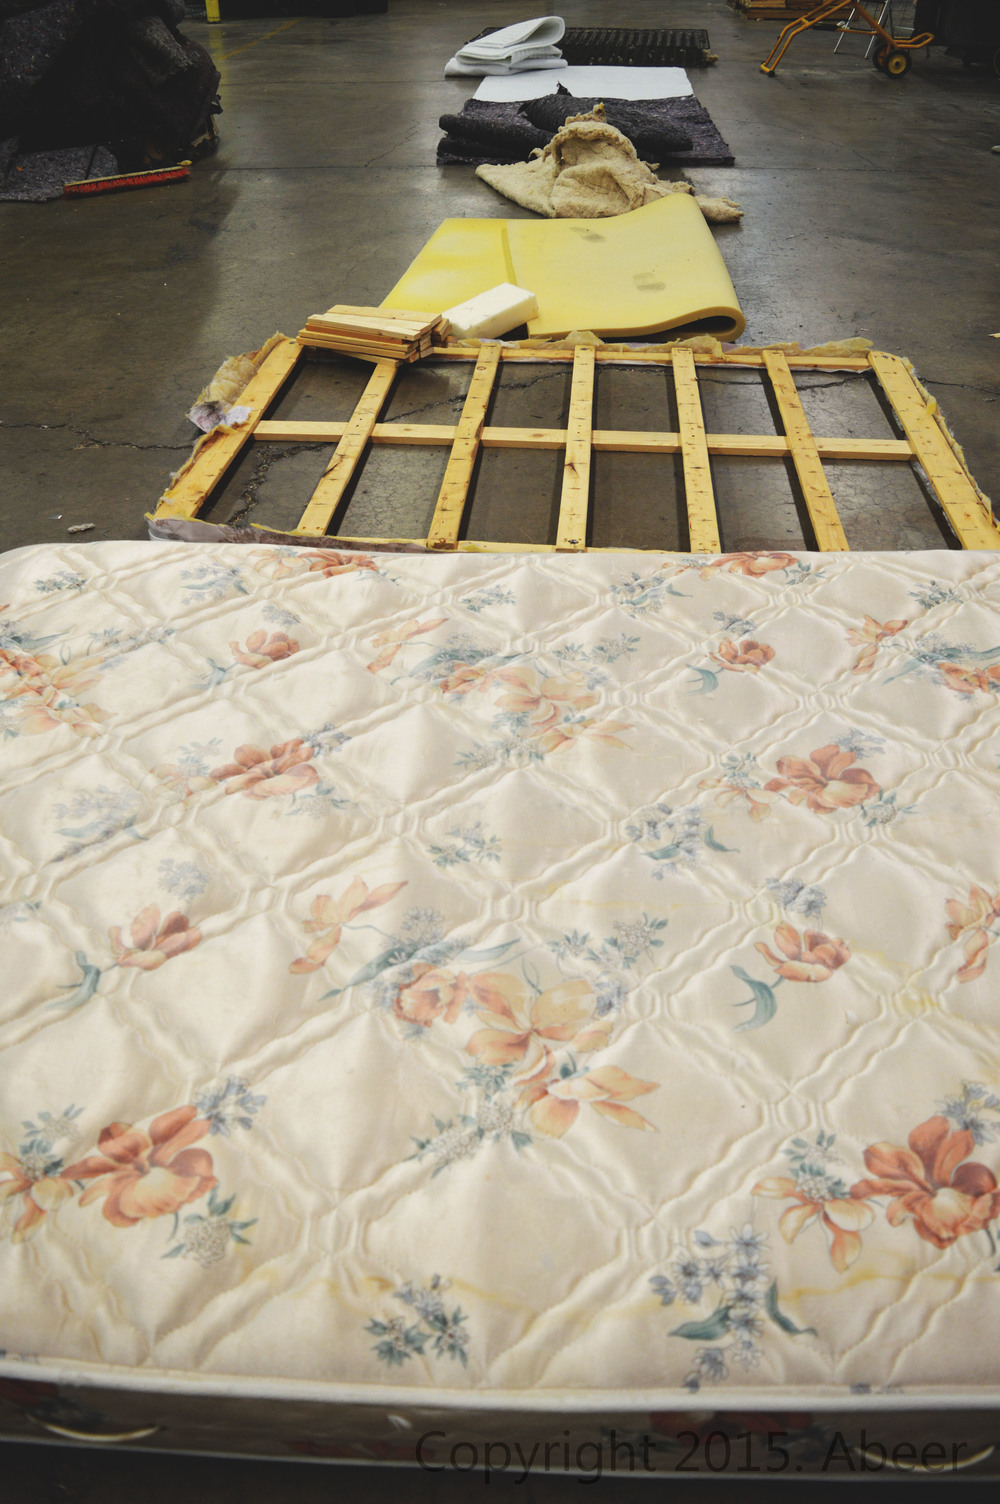 Breakdown of a Mattress - wood, foam, cotton, felt, metal.